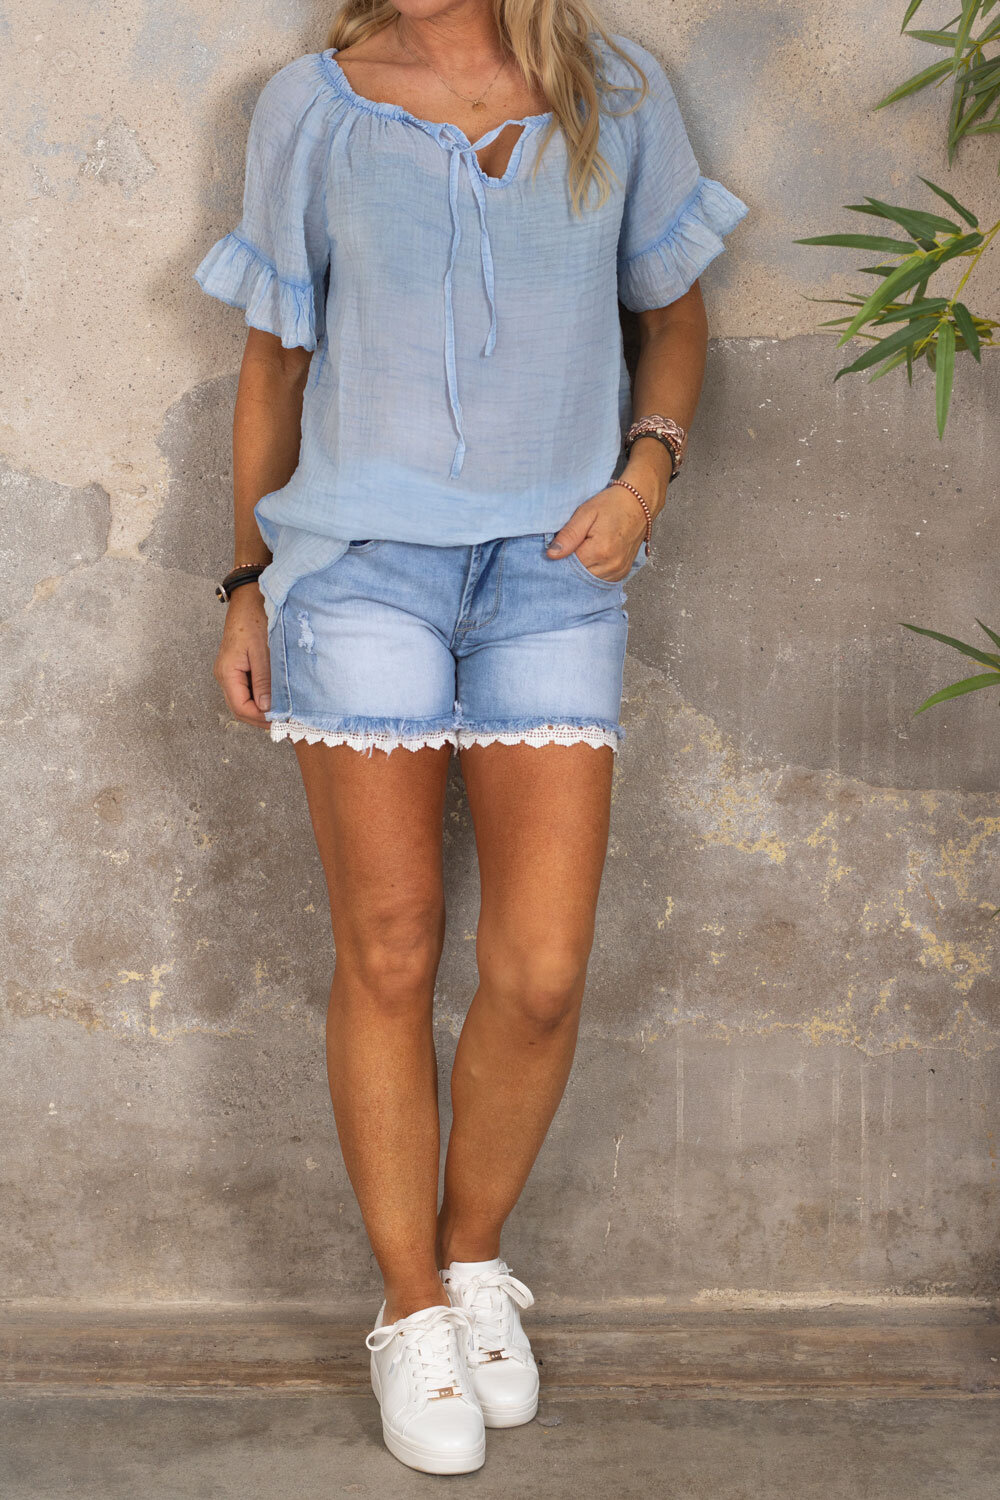 Emmie Blouse - With tie - Light blue